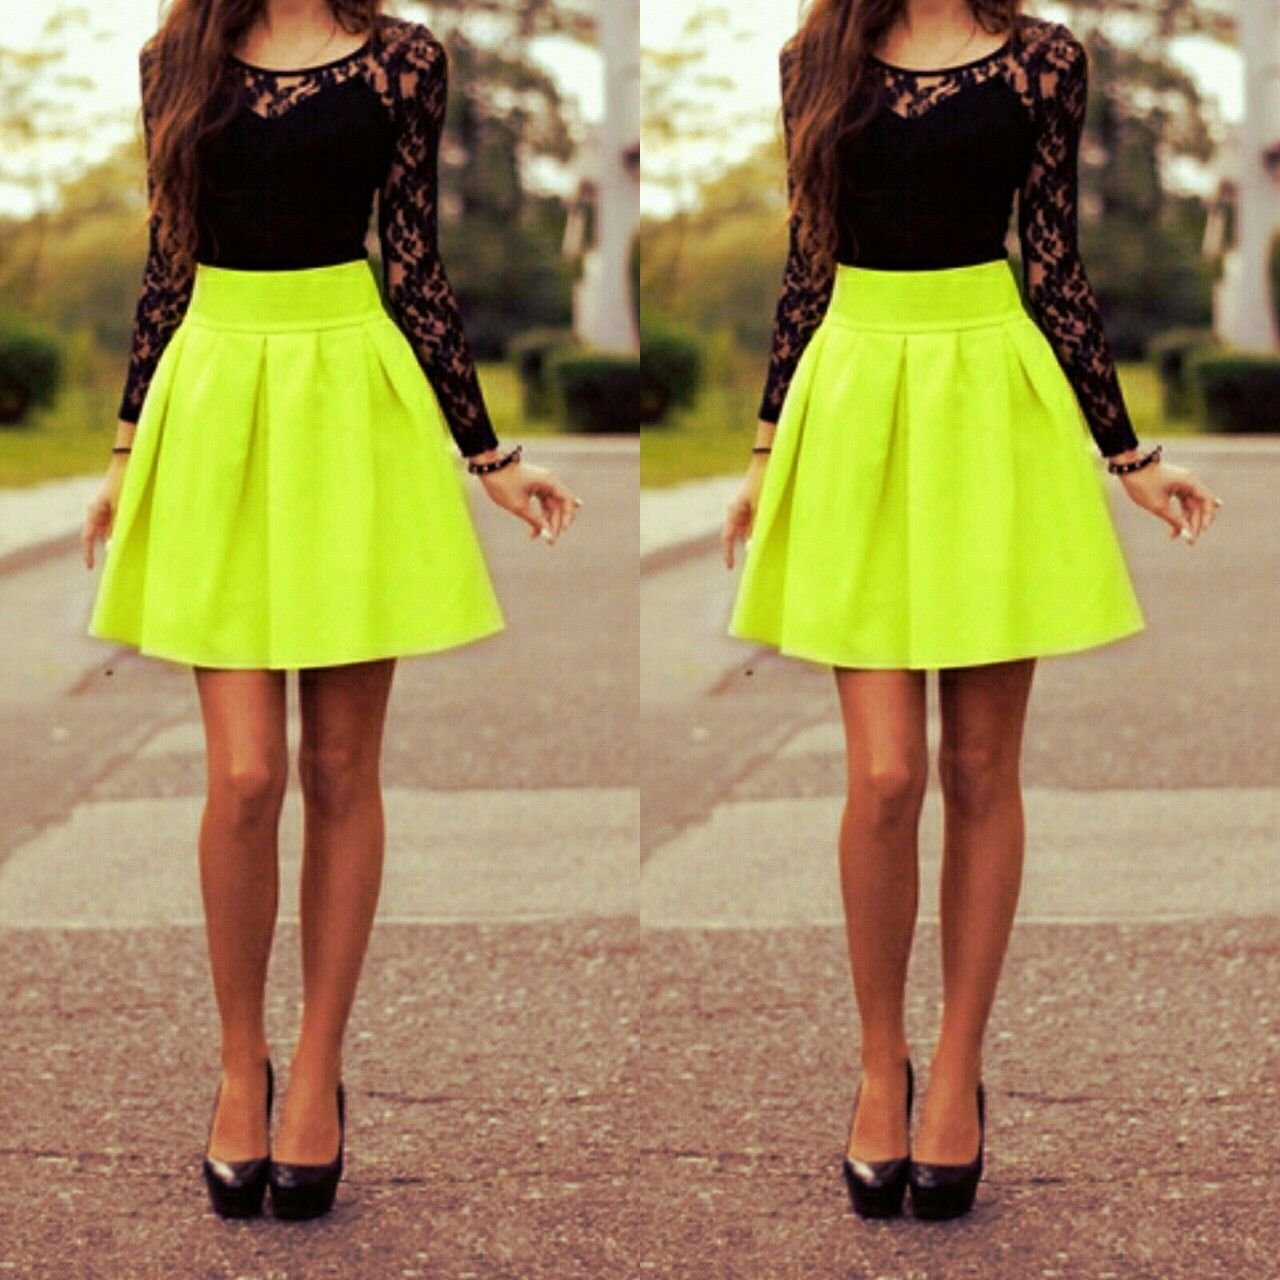 skirt outfit teens | Maxi Skirt Outfits Tumblr 2014-2015 ...